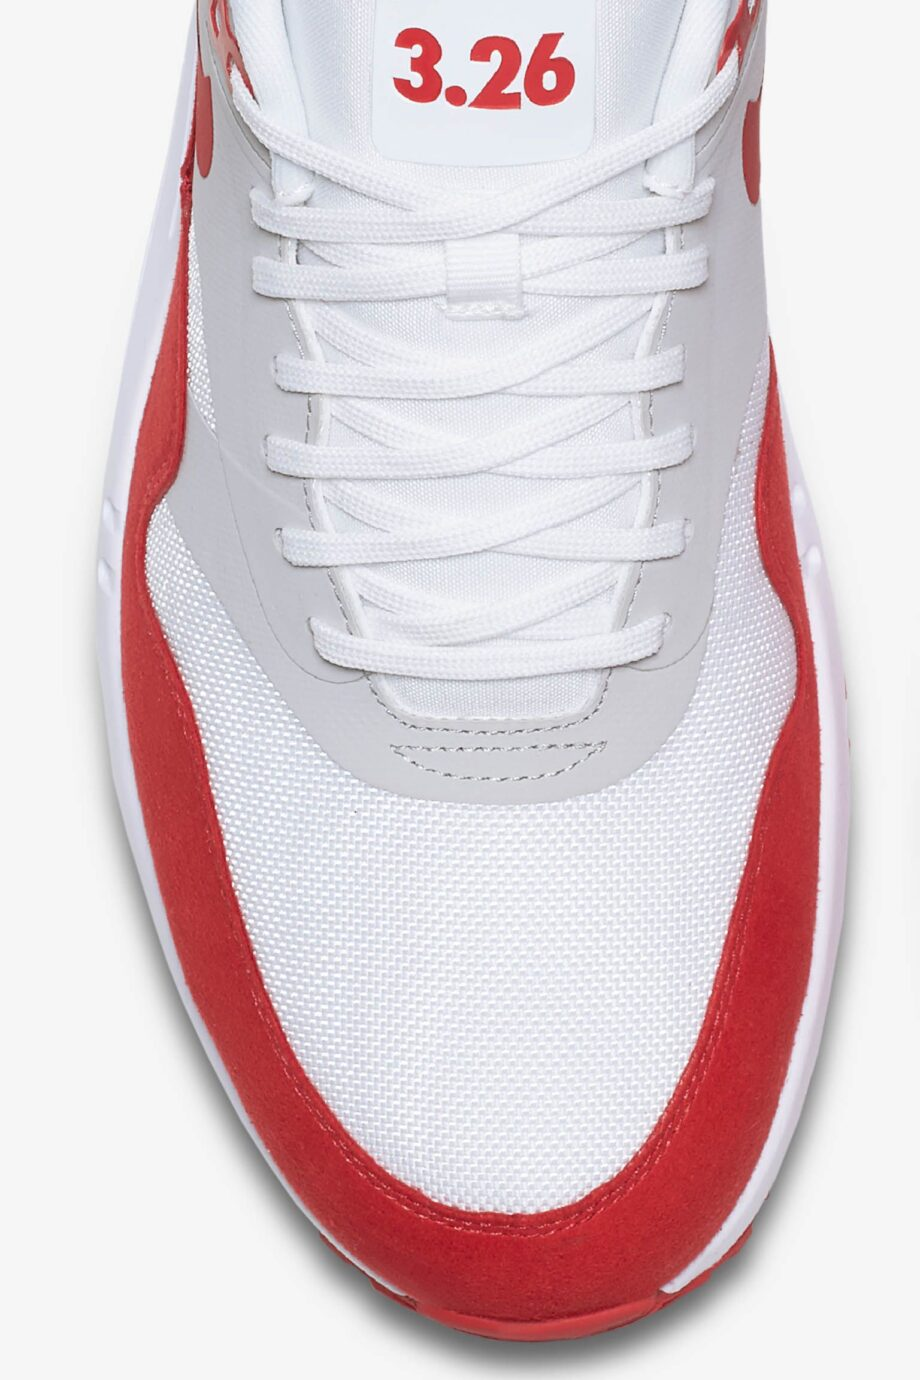 nike-air-max-1-ultra-20-le-white-university-red (3)